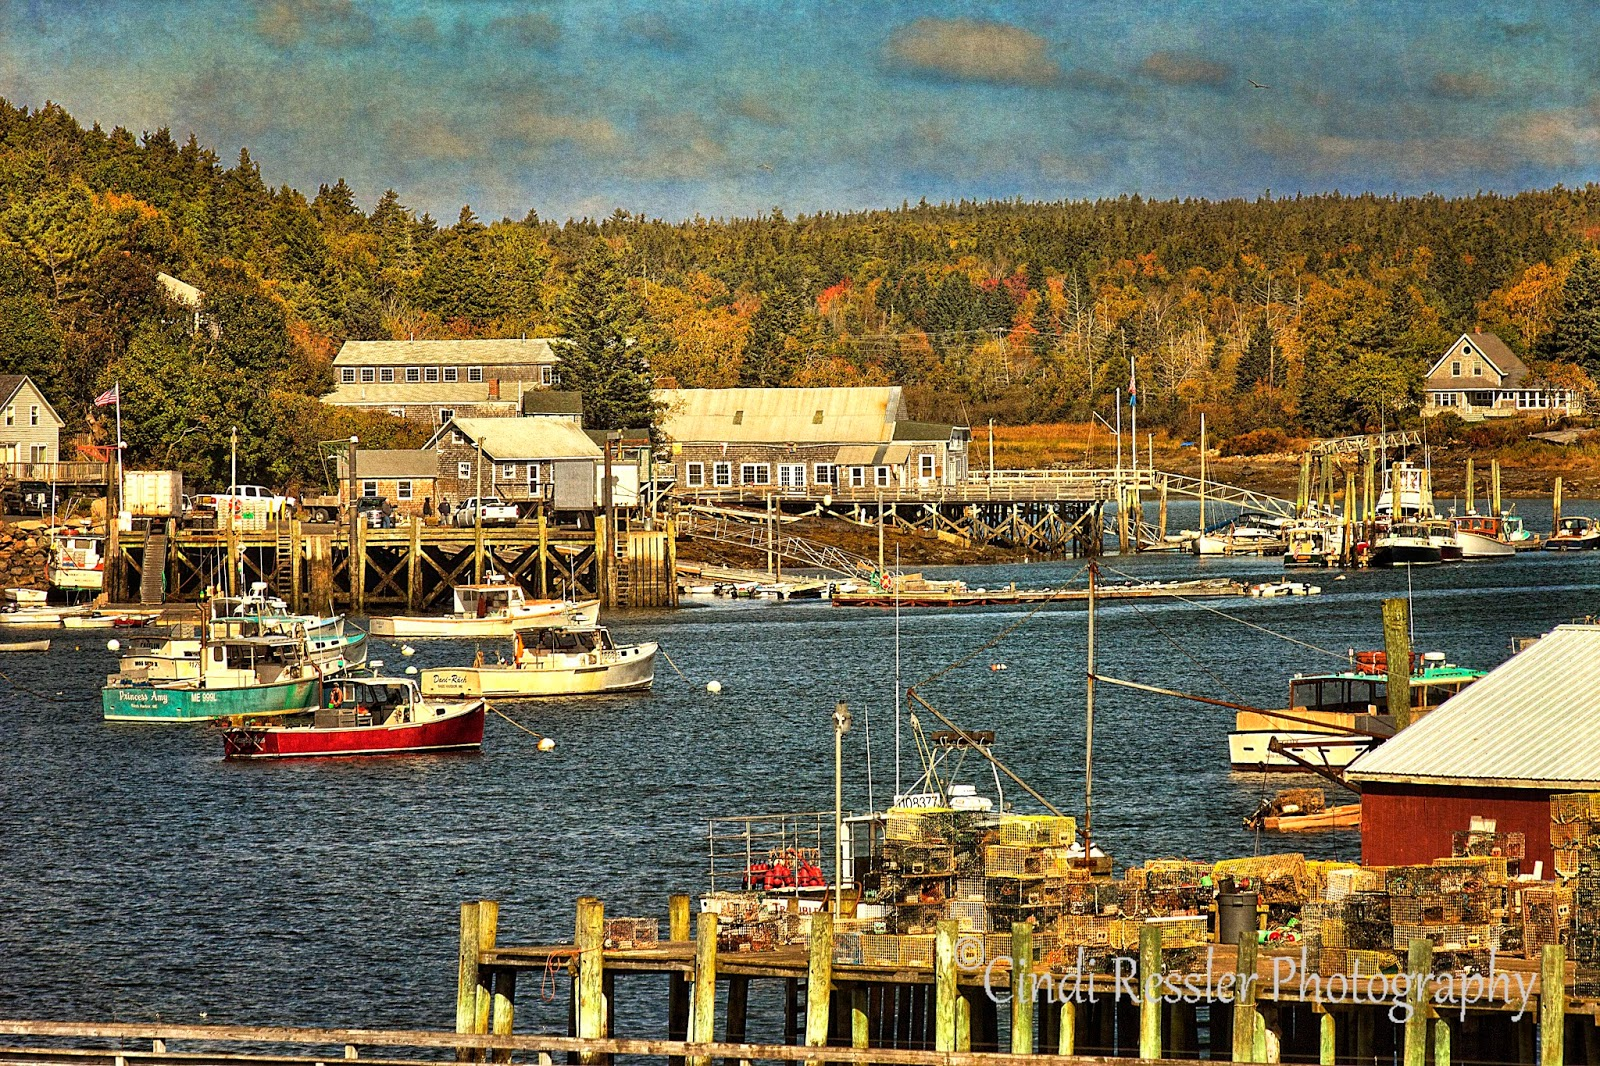 http://fineartamerica.com/featured/southwest-harbor-cindi-ressler.html